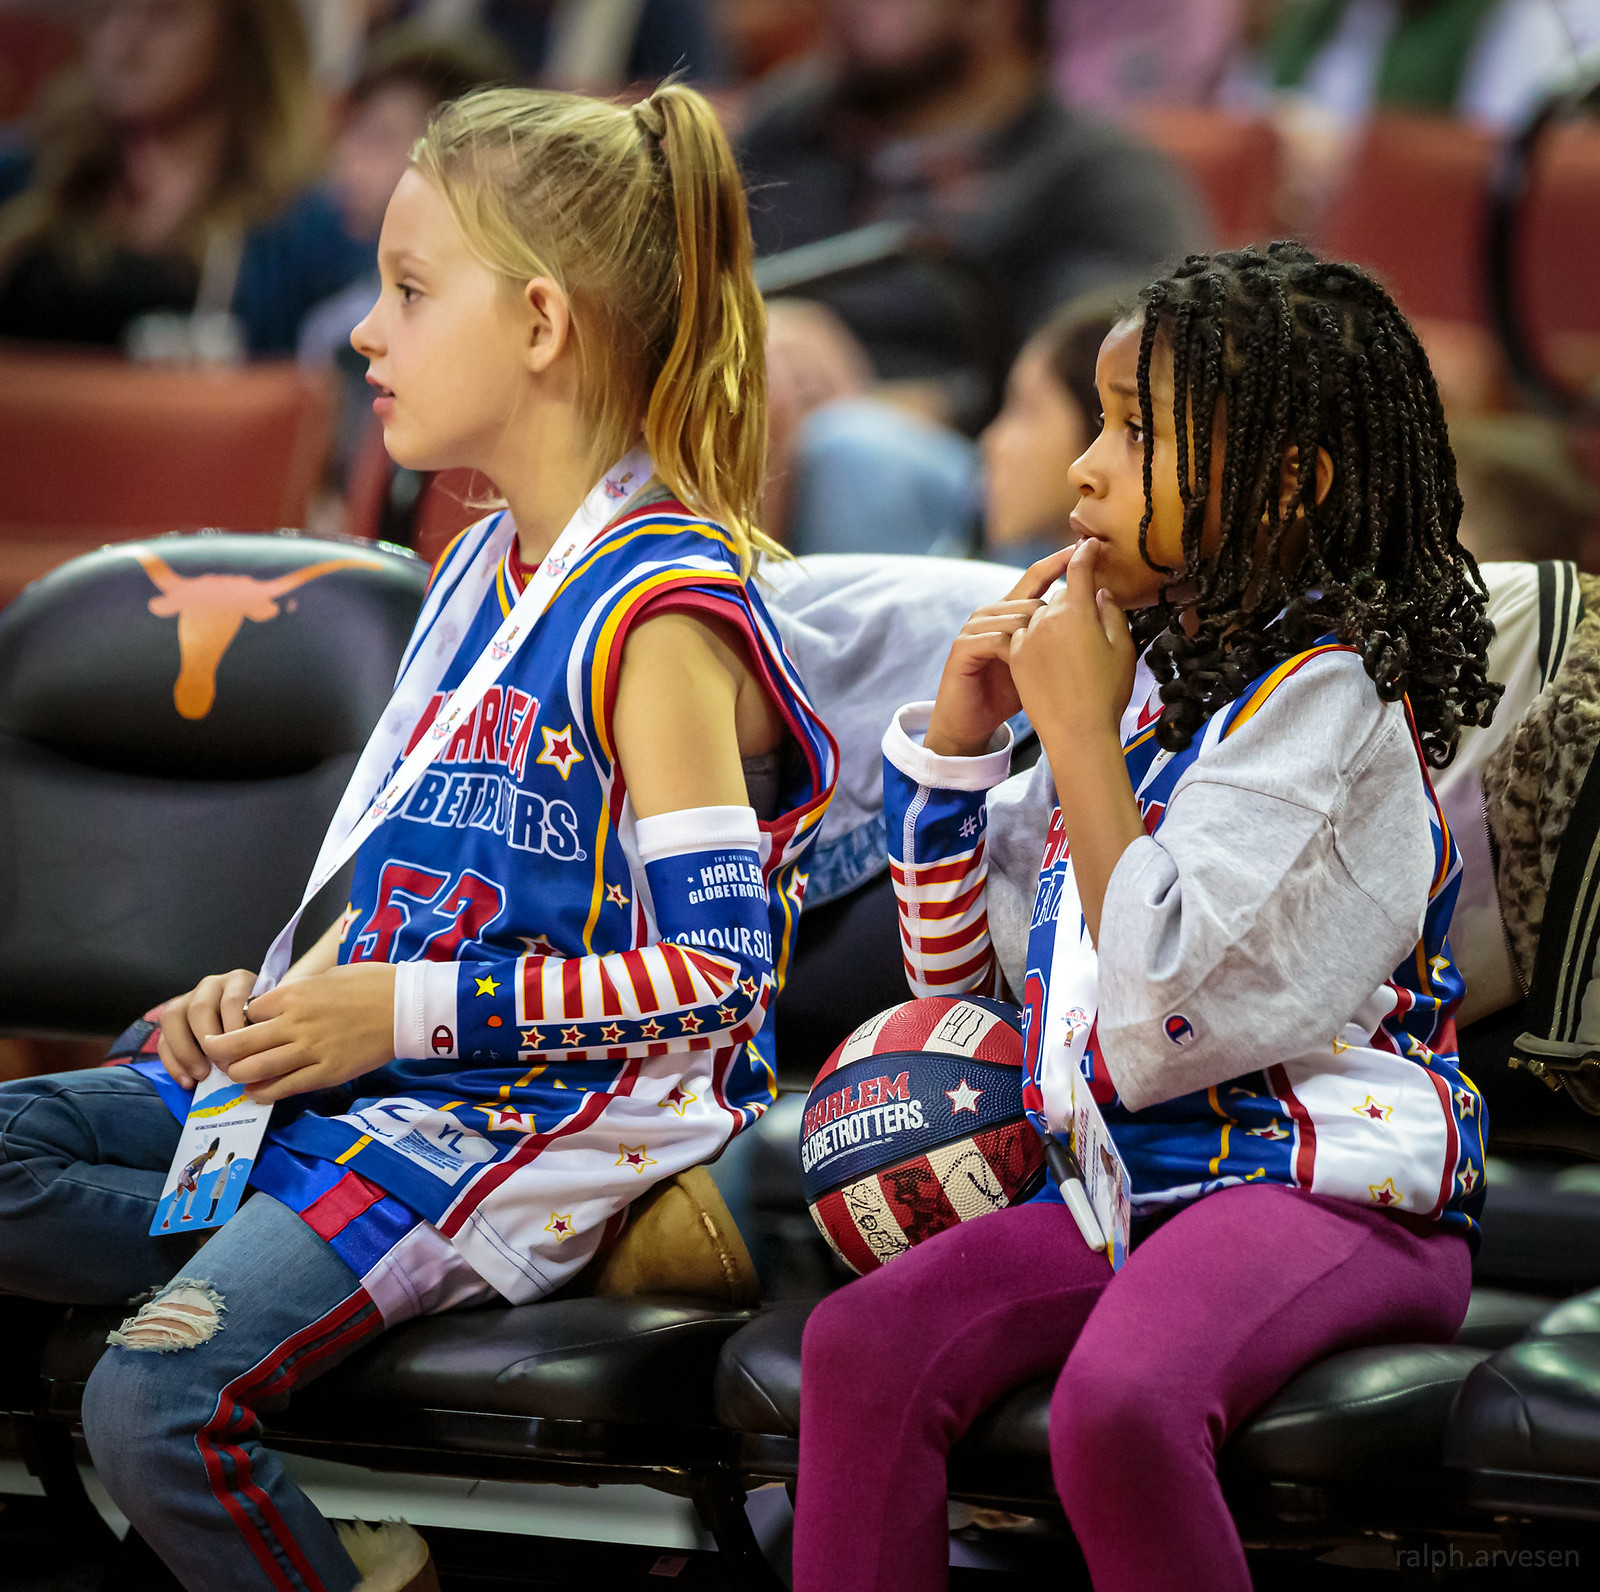 Harlem Globetrotters | Texas Review | Ralph Arvesen